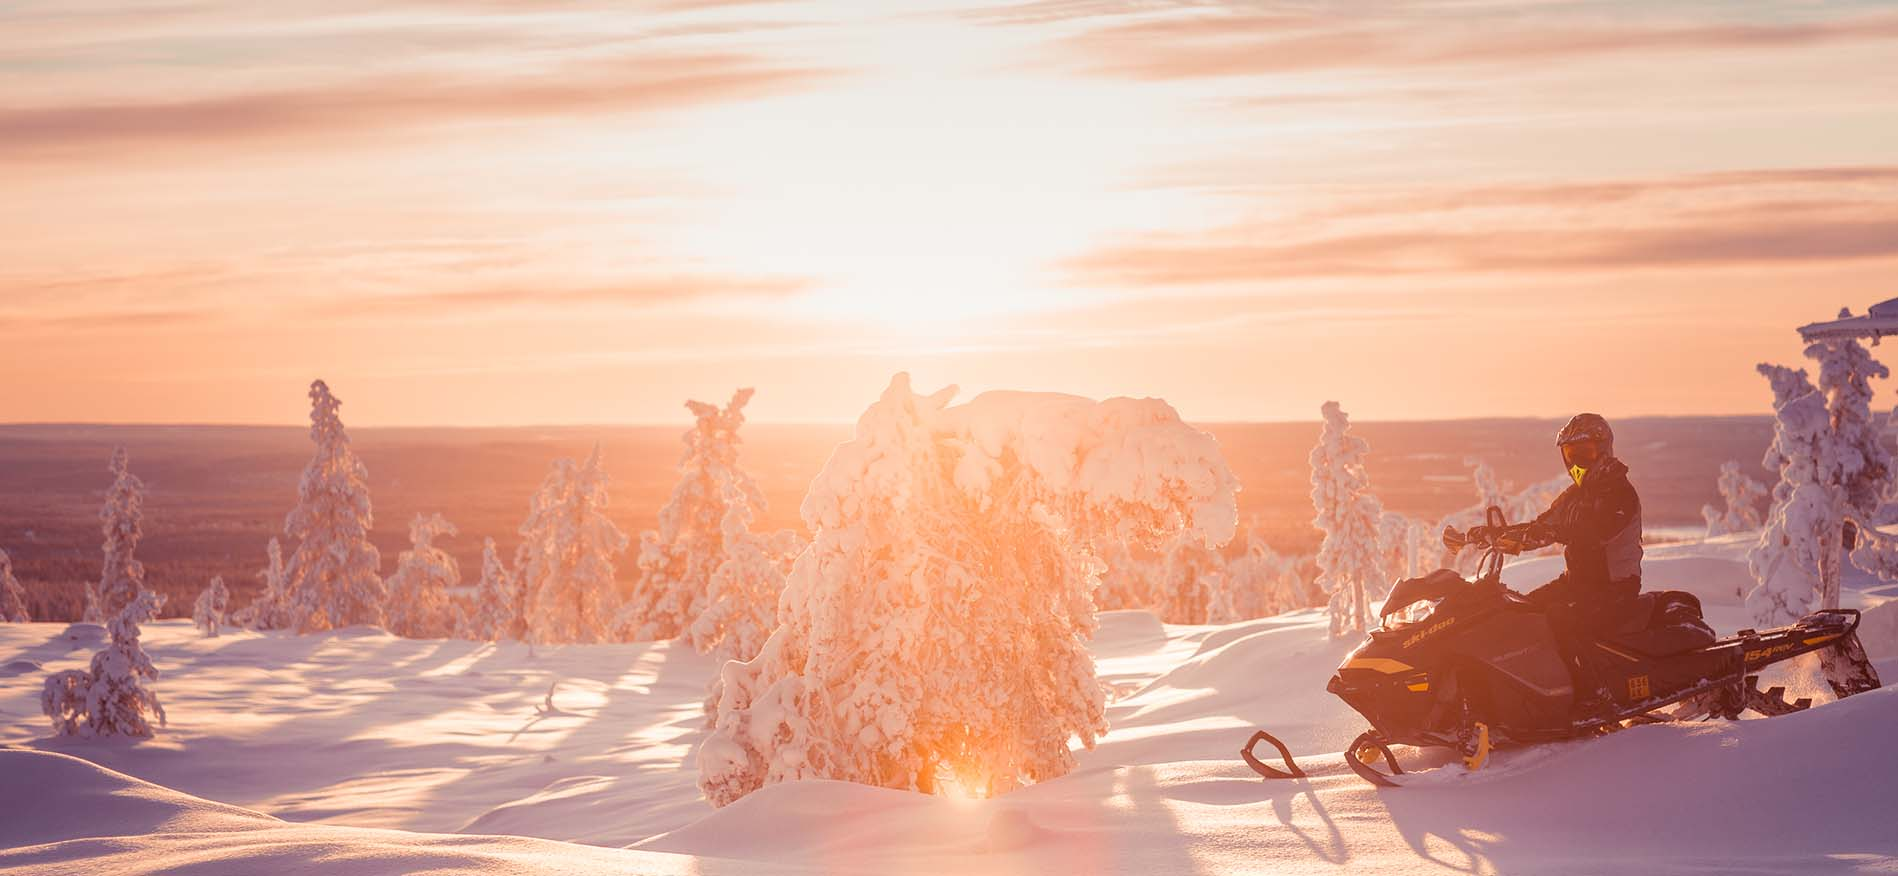 harriniva-hotels-snowmobiling-lapland-header